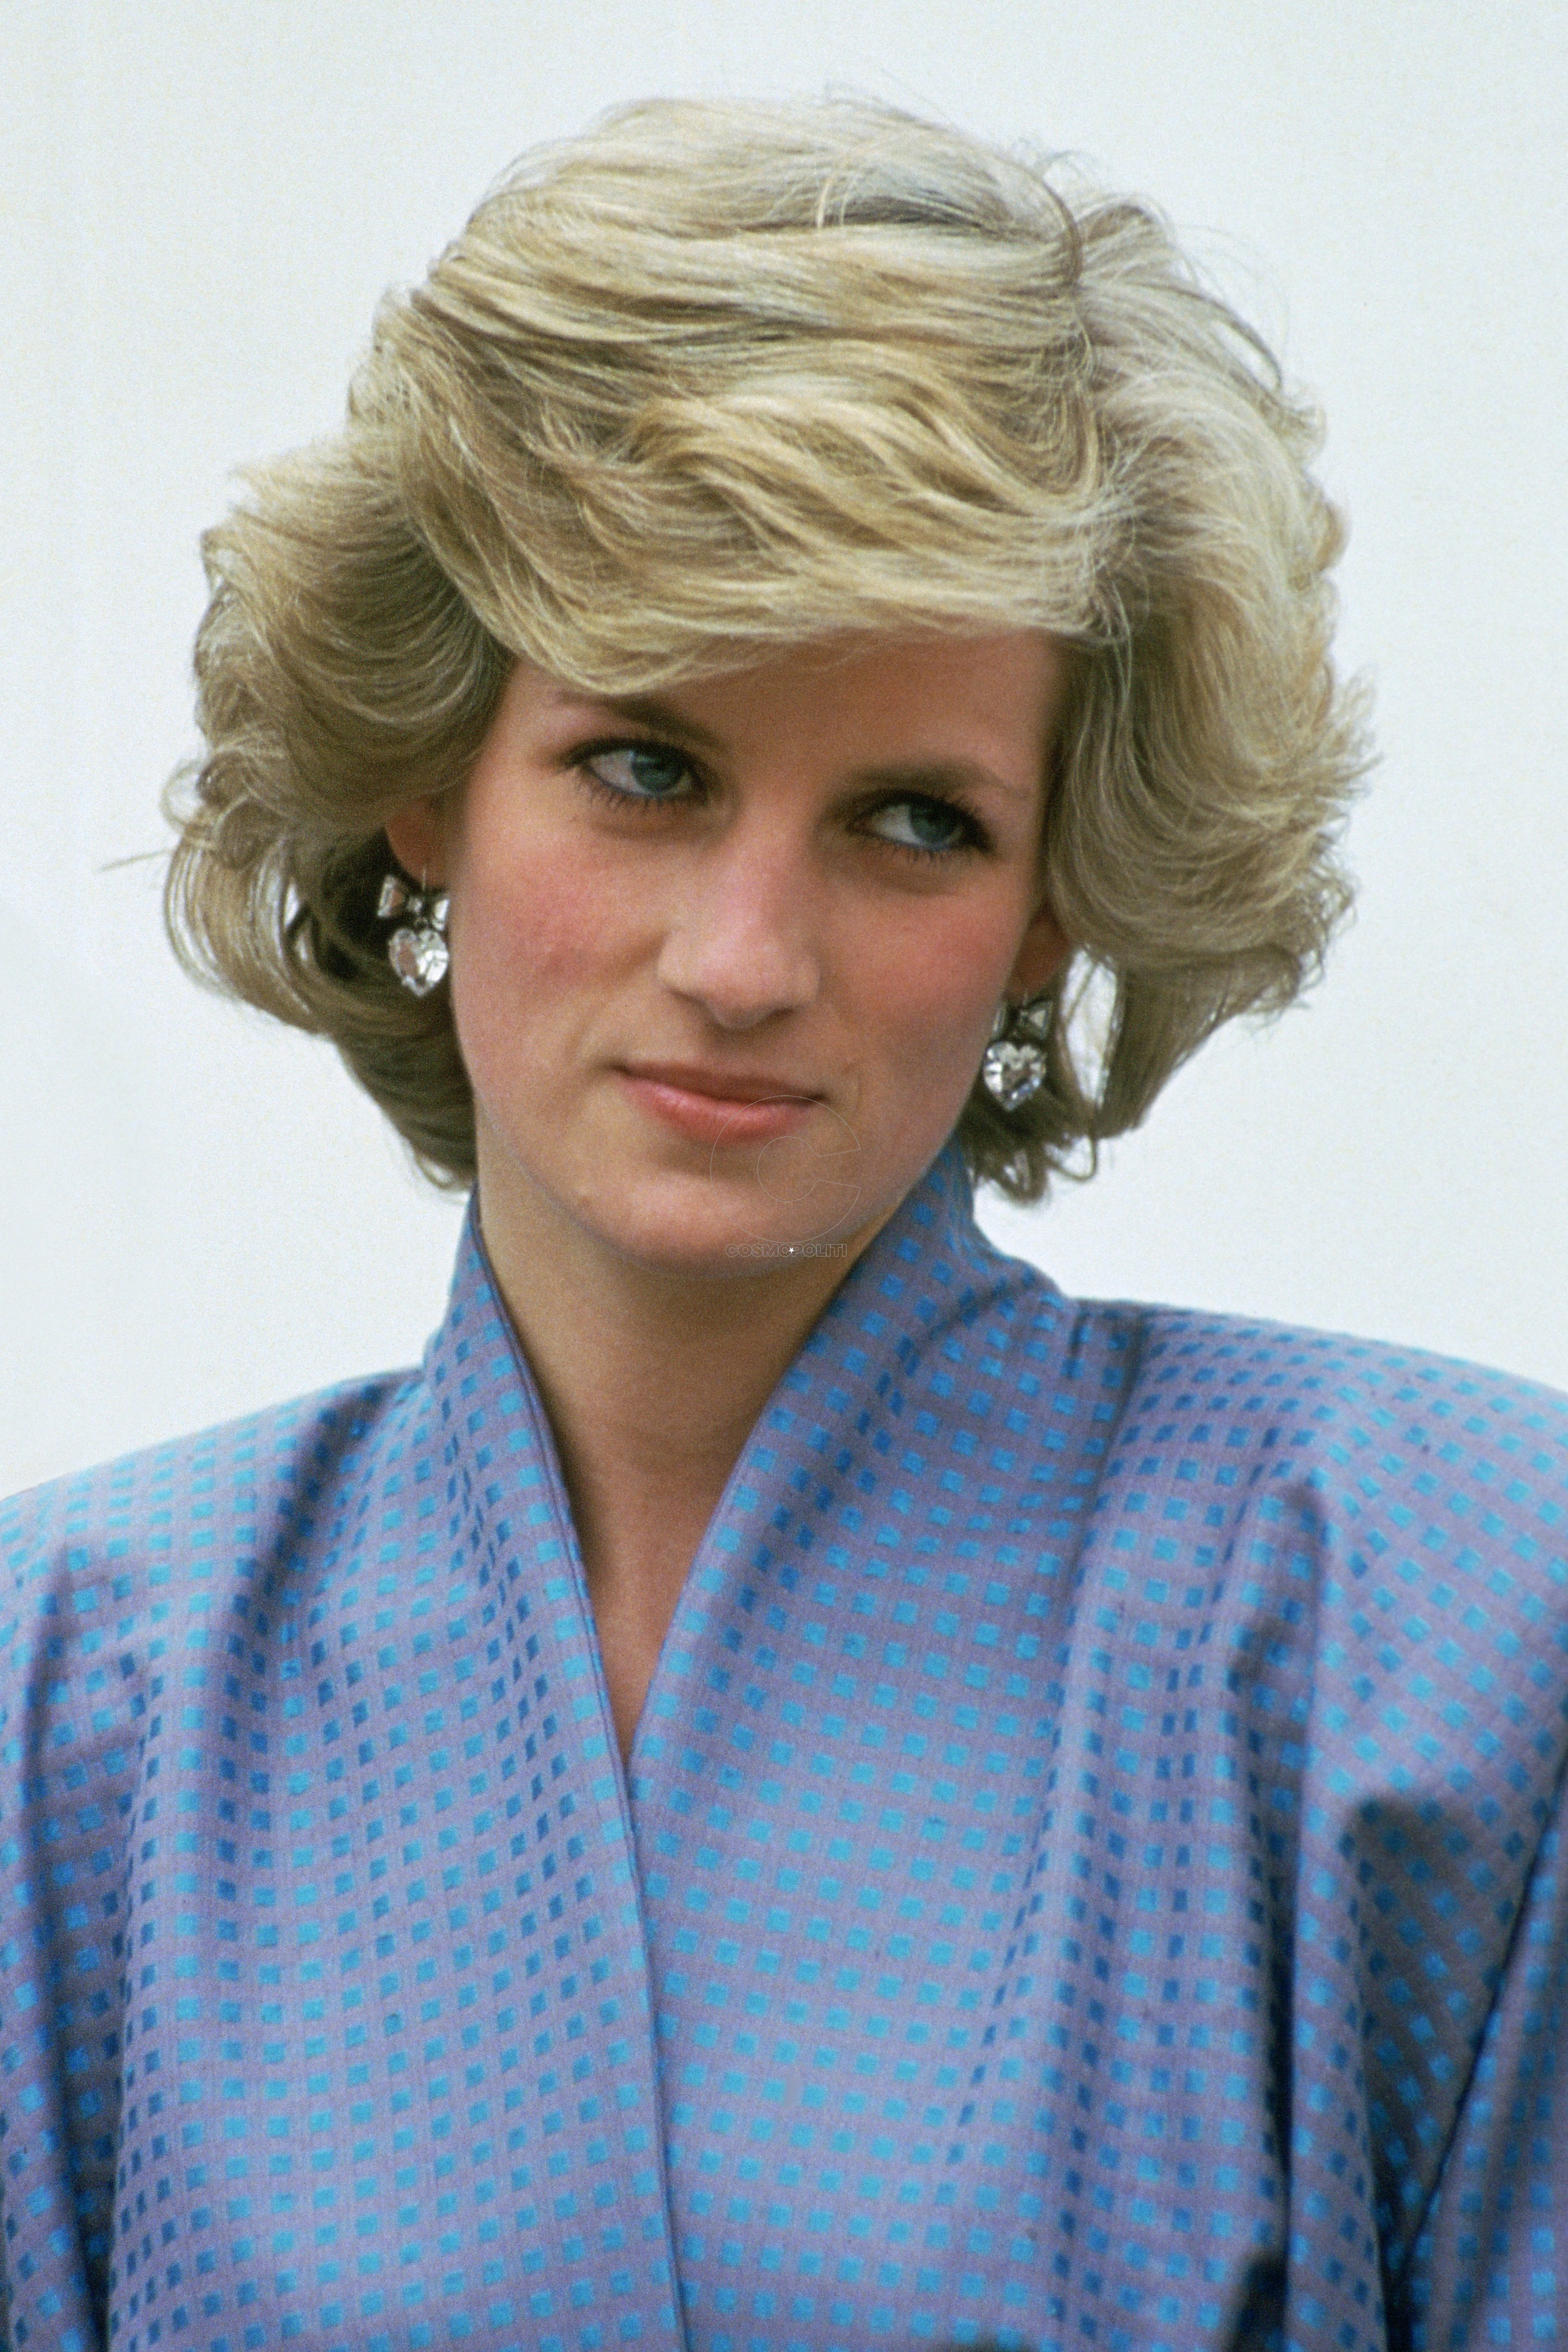 ITALY - APRIL 22: Diana, Princess Of Wales, Wearing A Silk Suit Designed By Fashion Designer Bruce Oldfield, During An Official Overseas Visit. Diana's Crystal Heart Earrings Are By Jewellers Butler And Wilson. (Photo by Tim Graham/Getty Images)